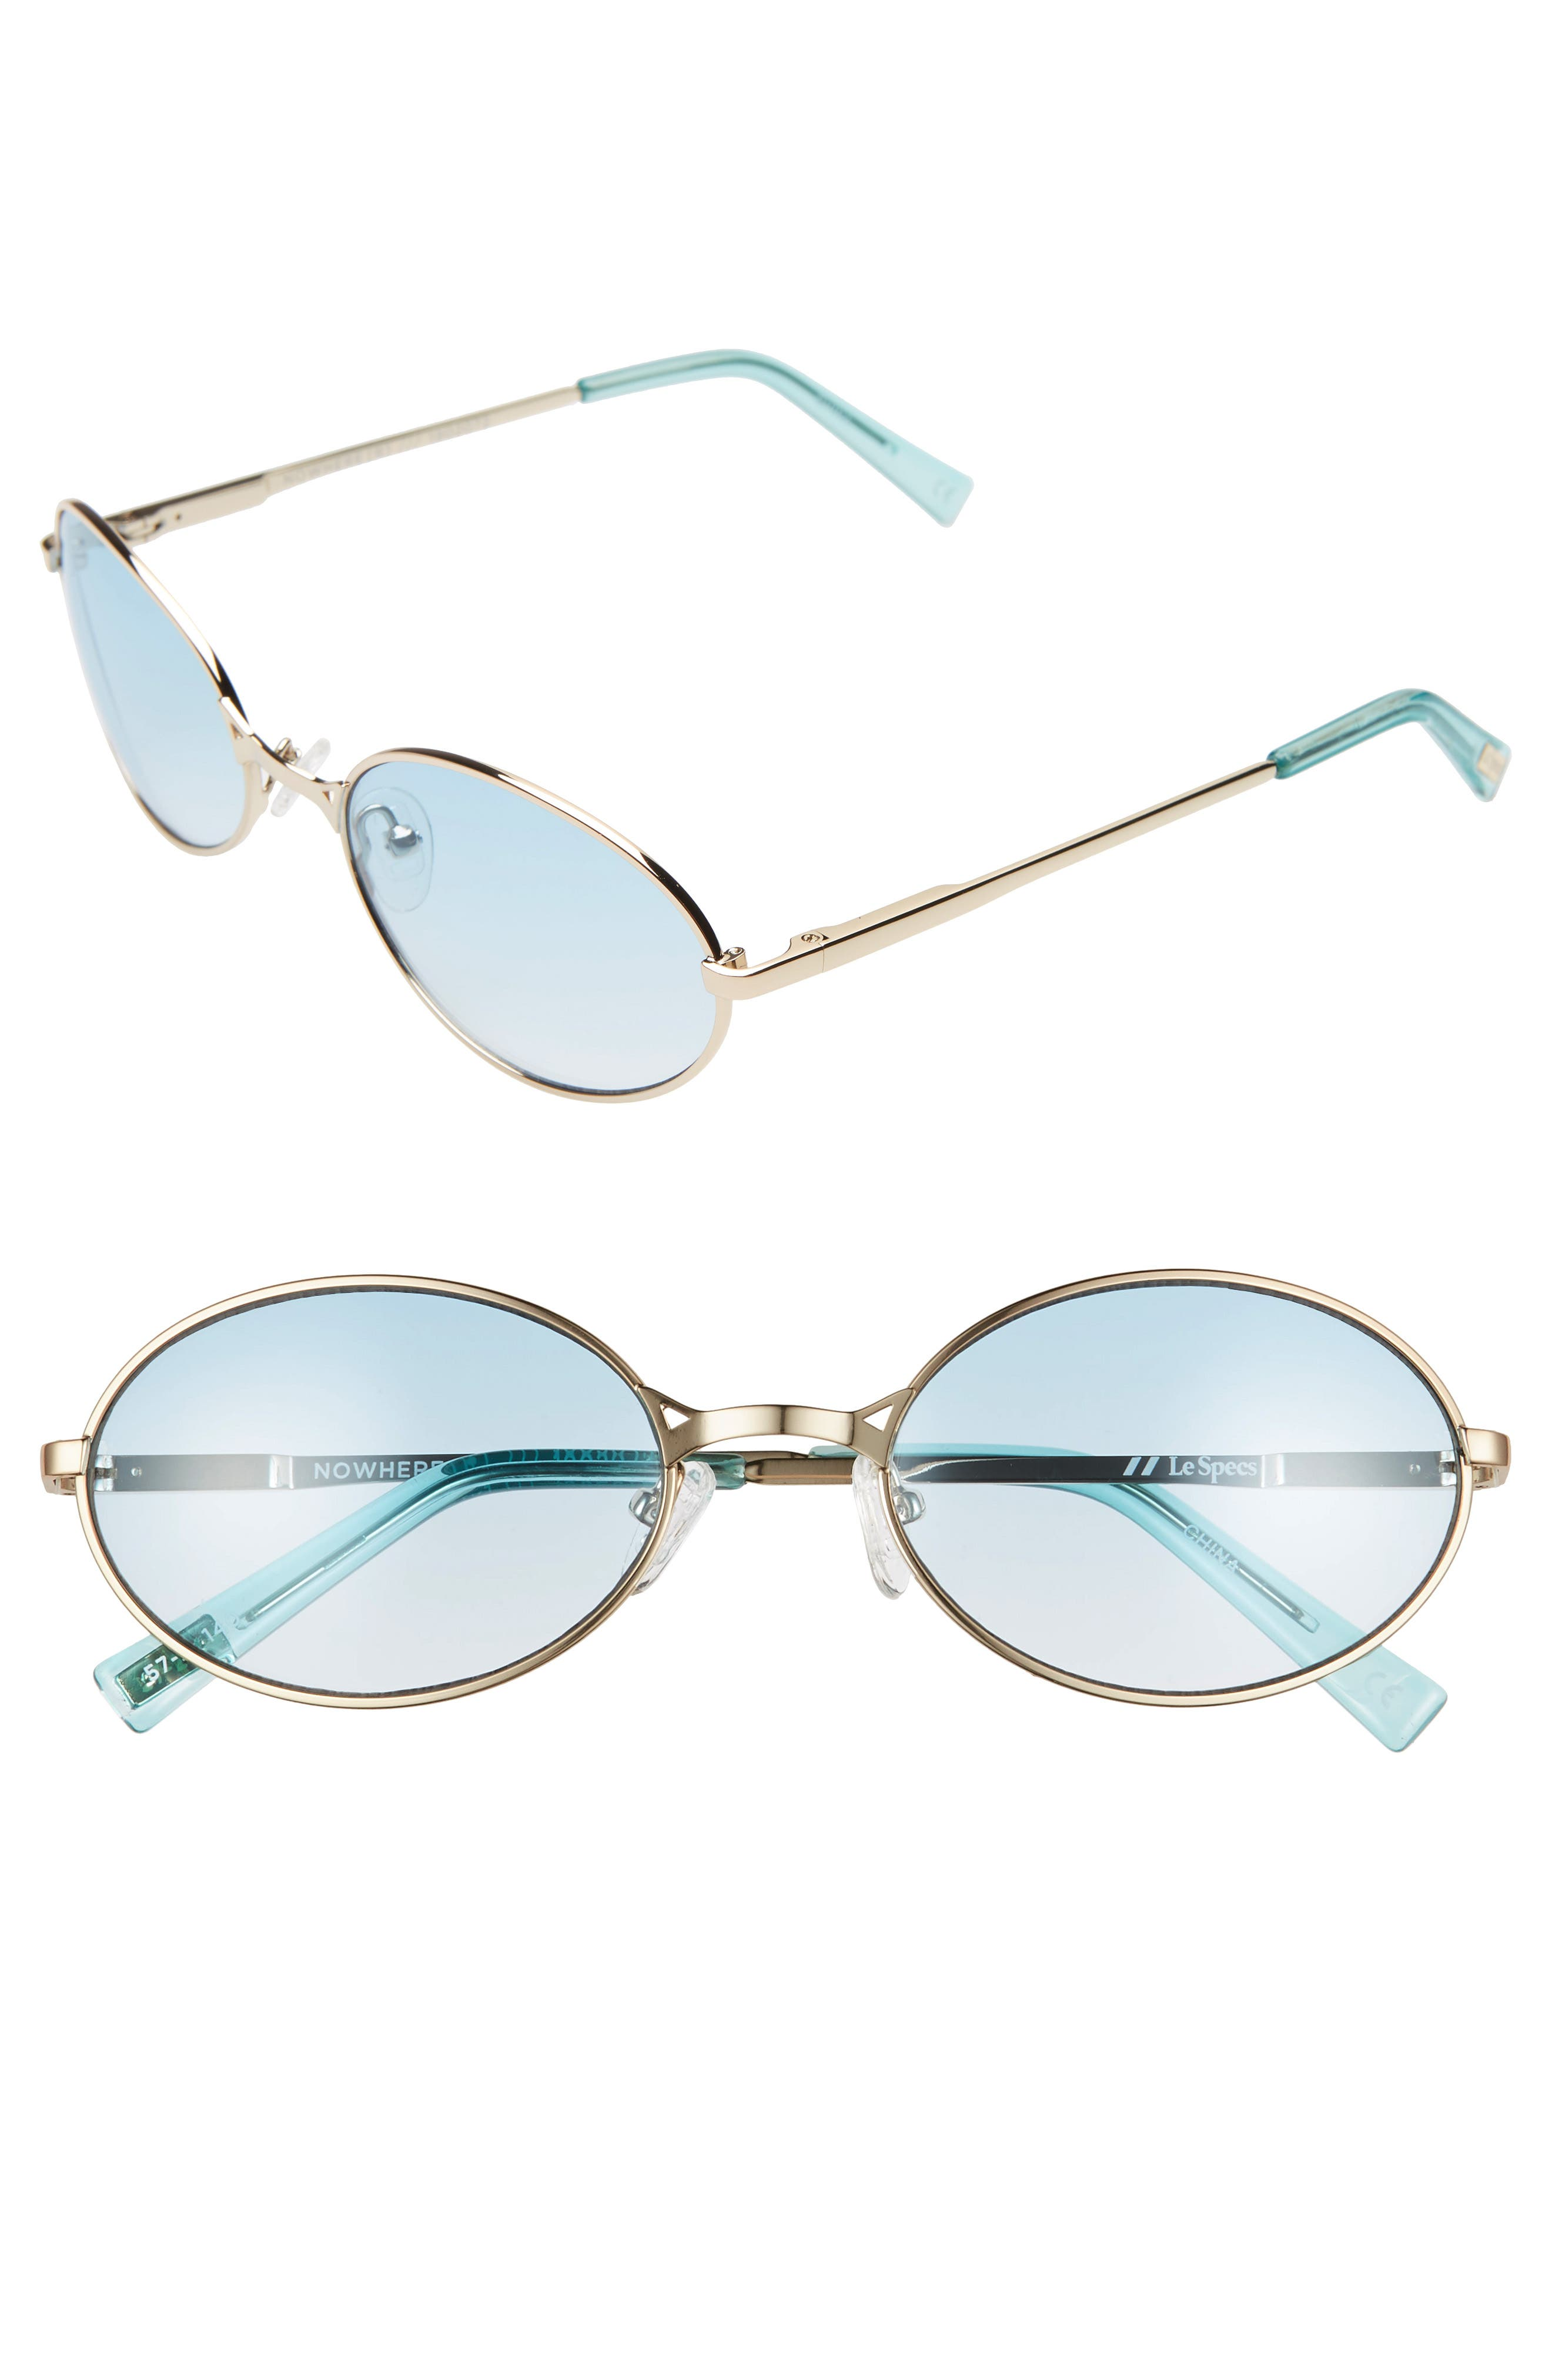 Le Specs Nowhere Rund 57Mm Oval Sunglasses - Bright Gold/ Teal Gradient